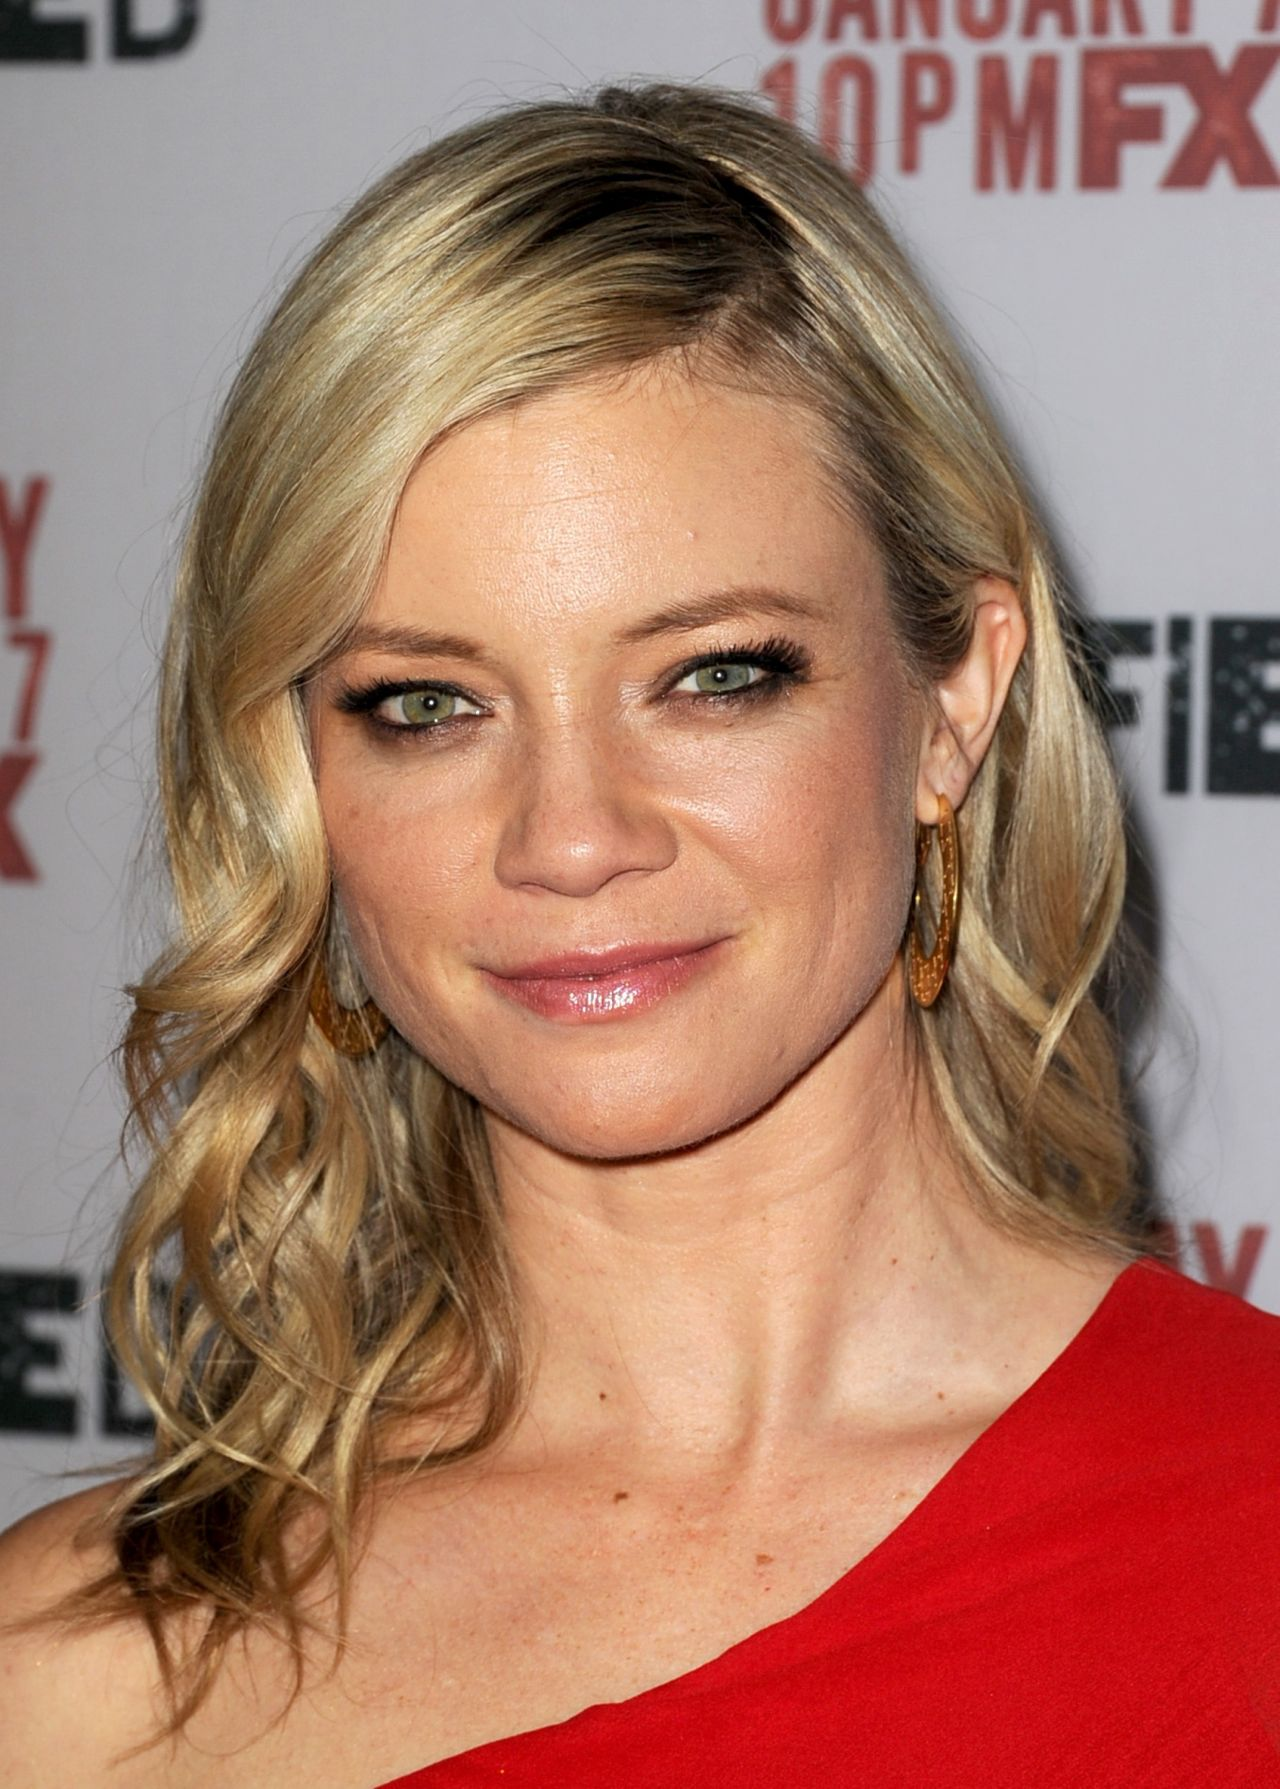 Amy Smart Red Carpet Photos - FX